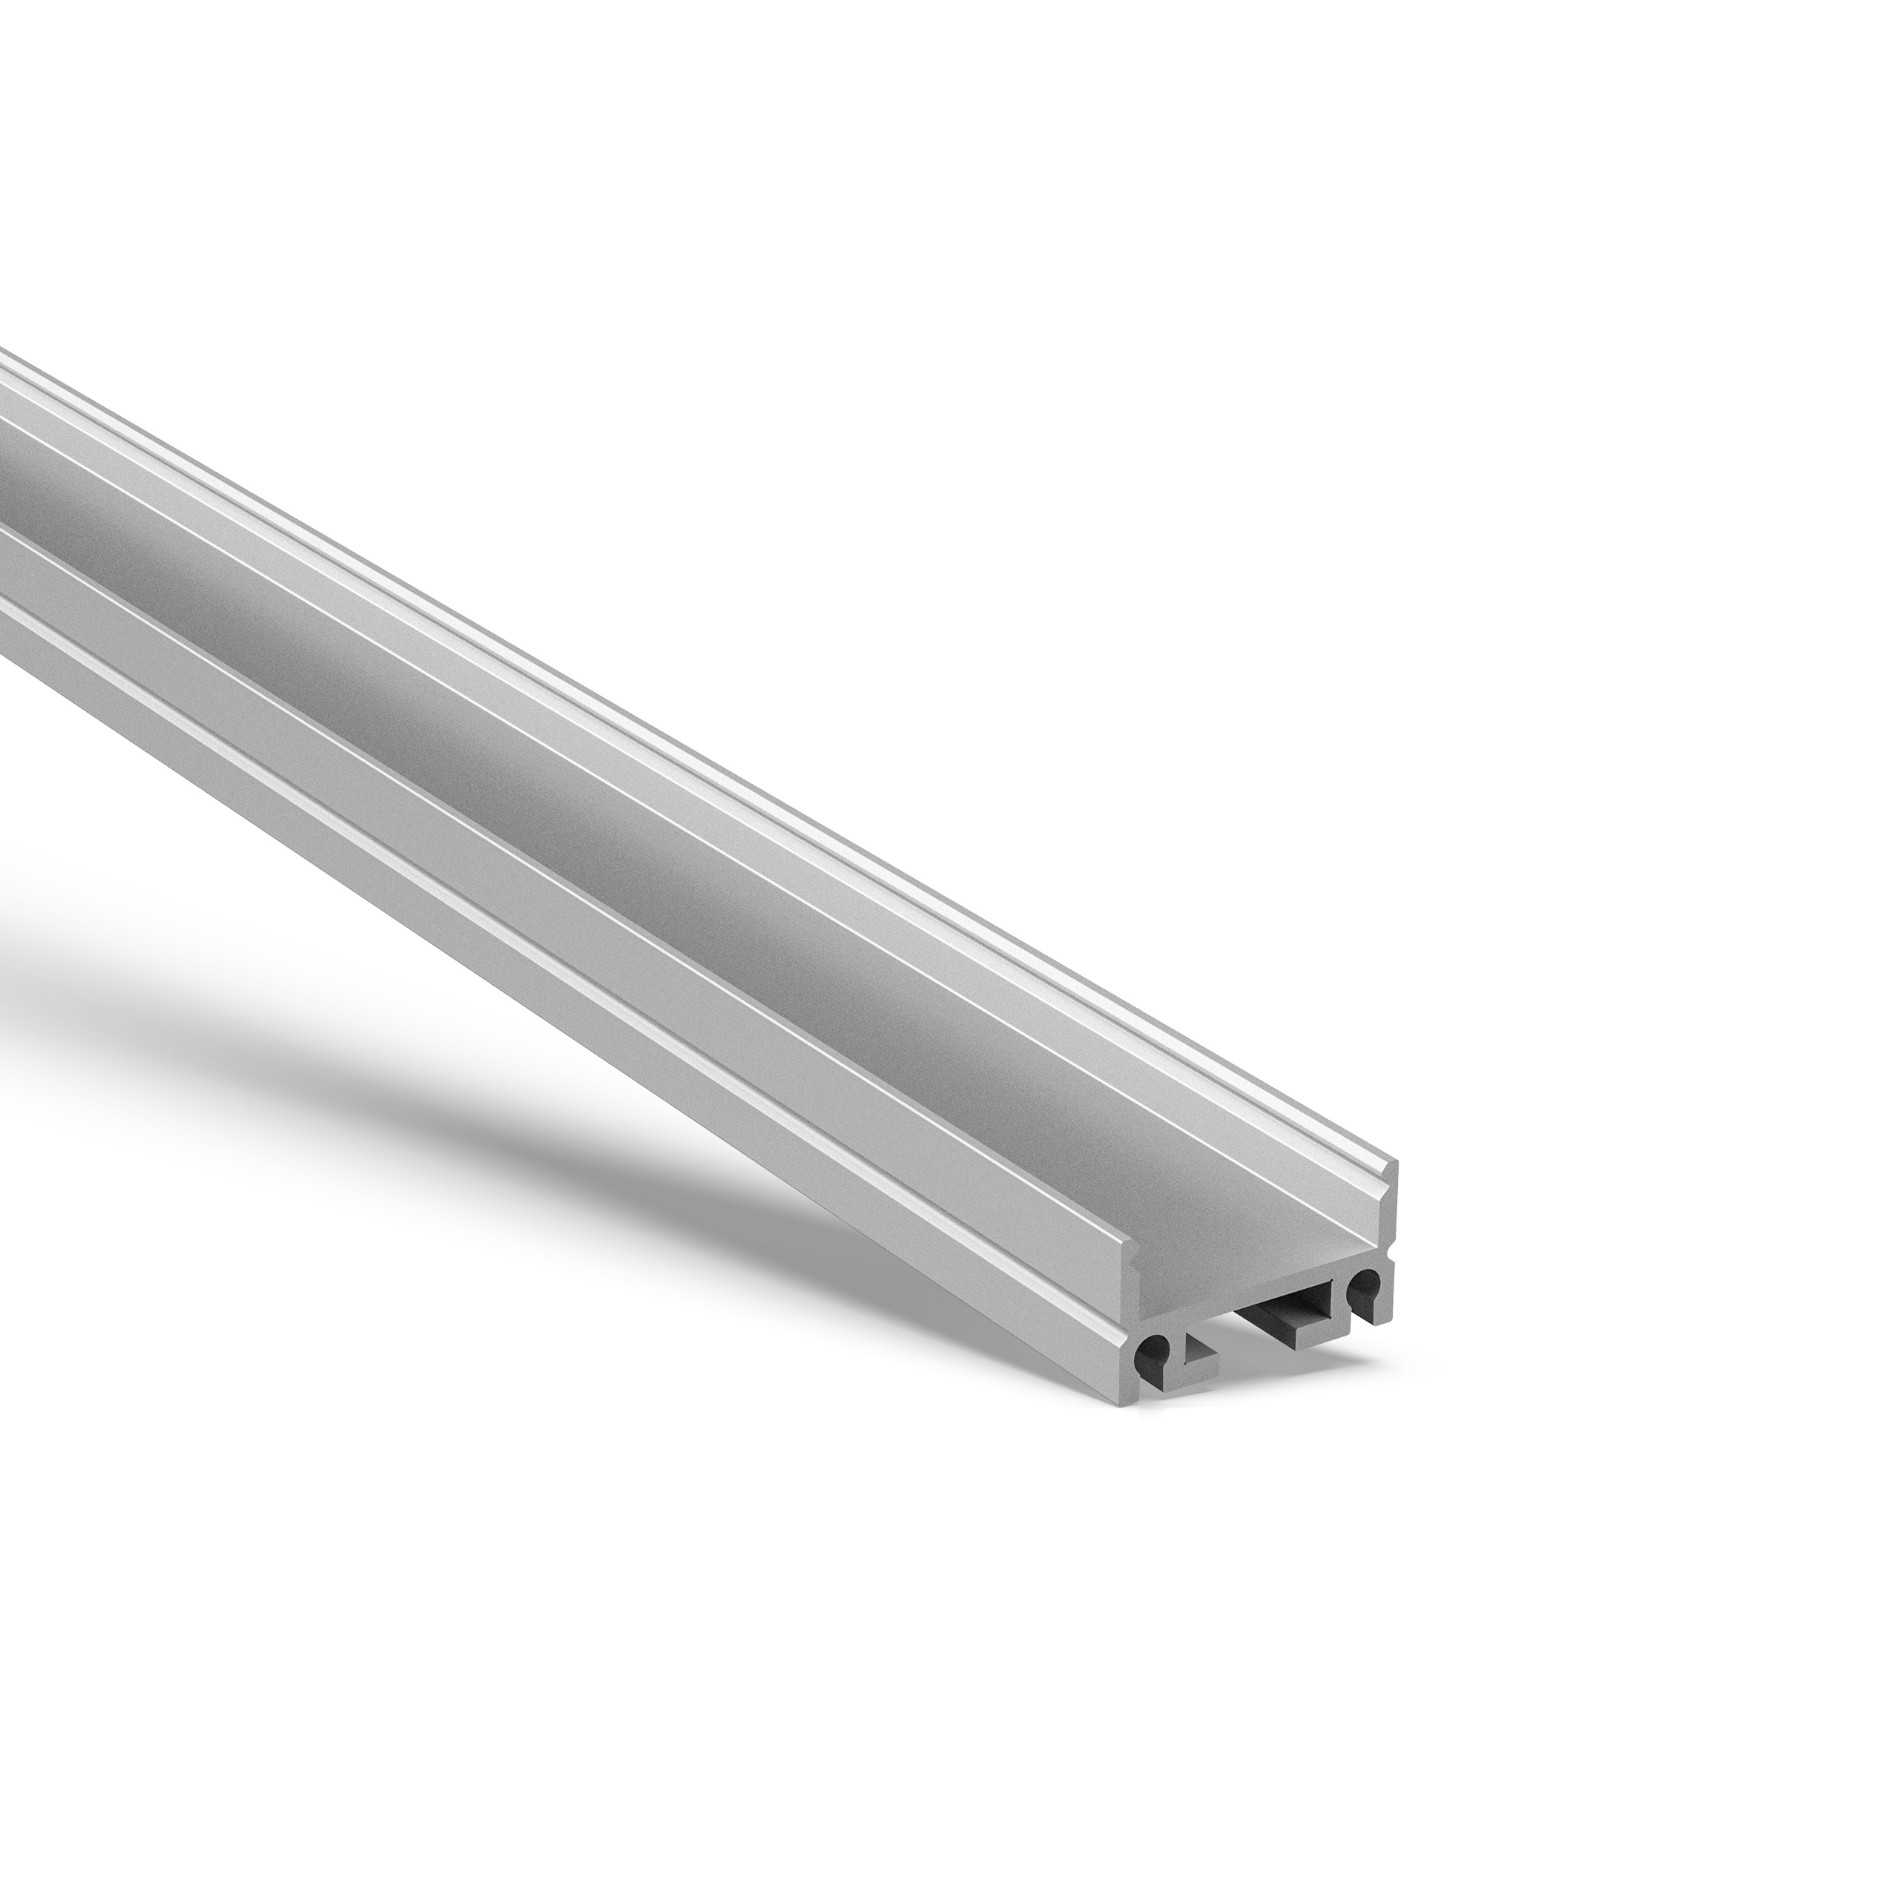 AT5H Deeper surface square led profile 19.5x28.4mm